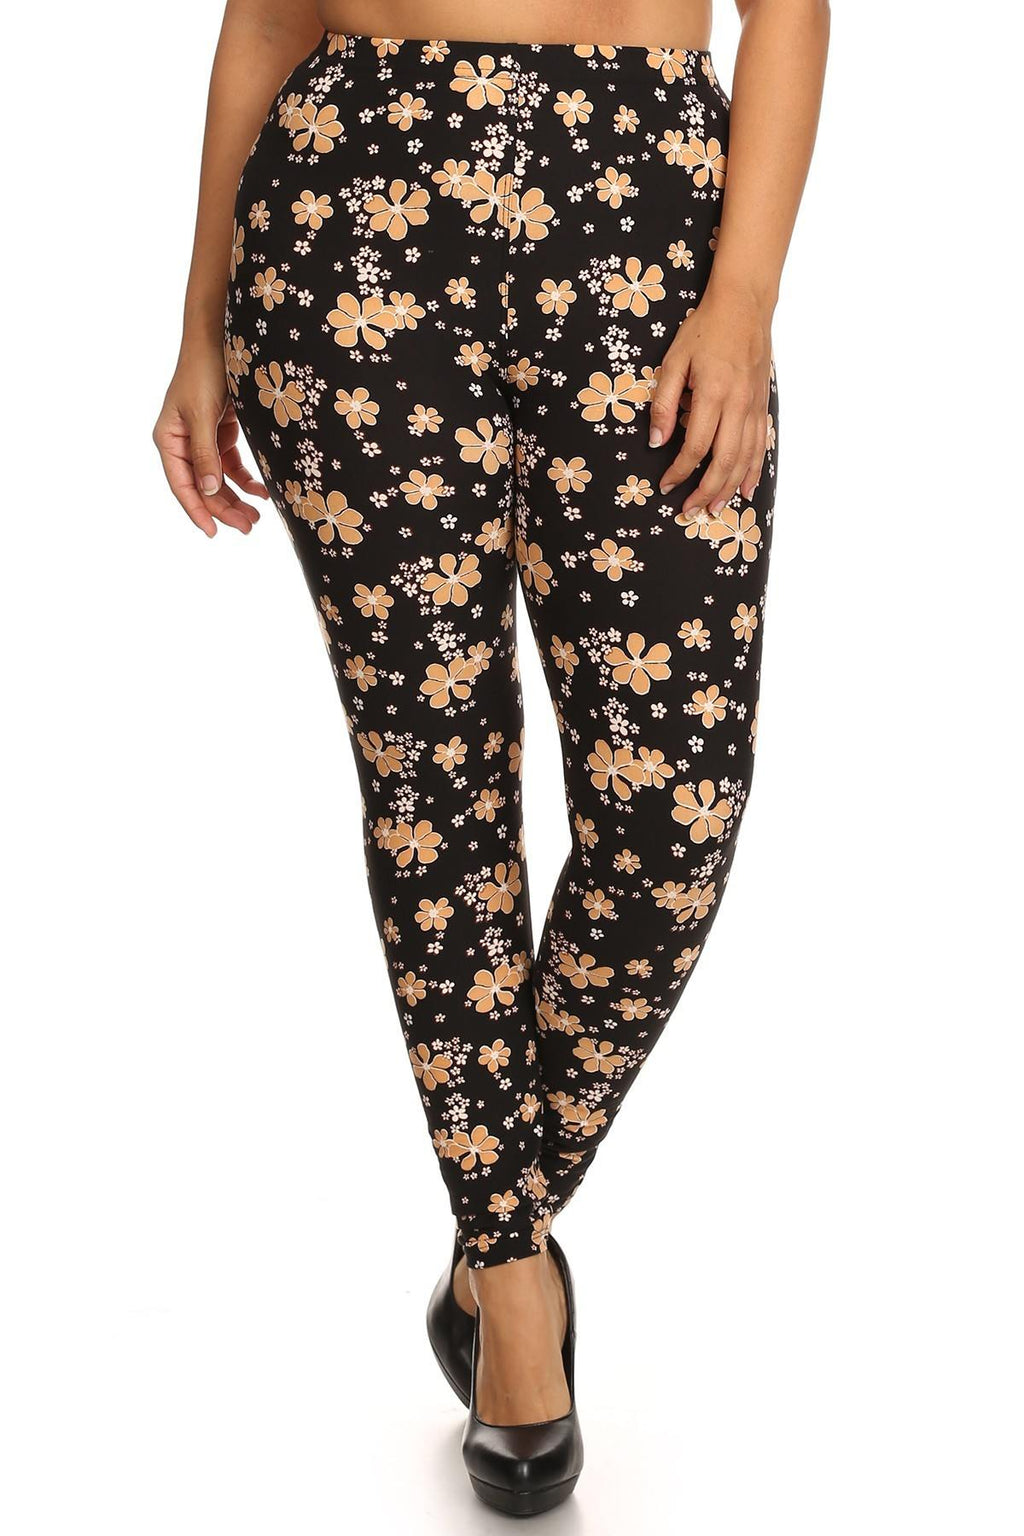 Super Soft Peach Skin Fabric, Floral Graphic Printed Knit Legging With Elastic Waist Detail. High Waist Fit